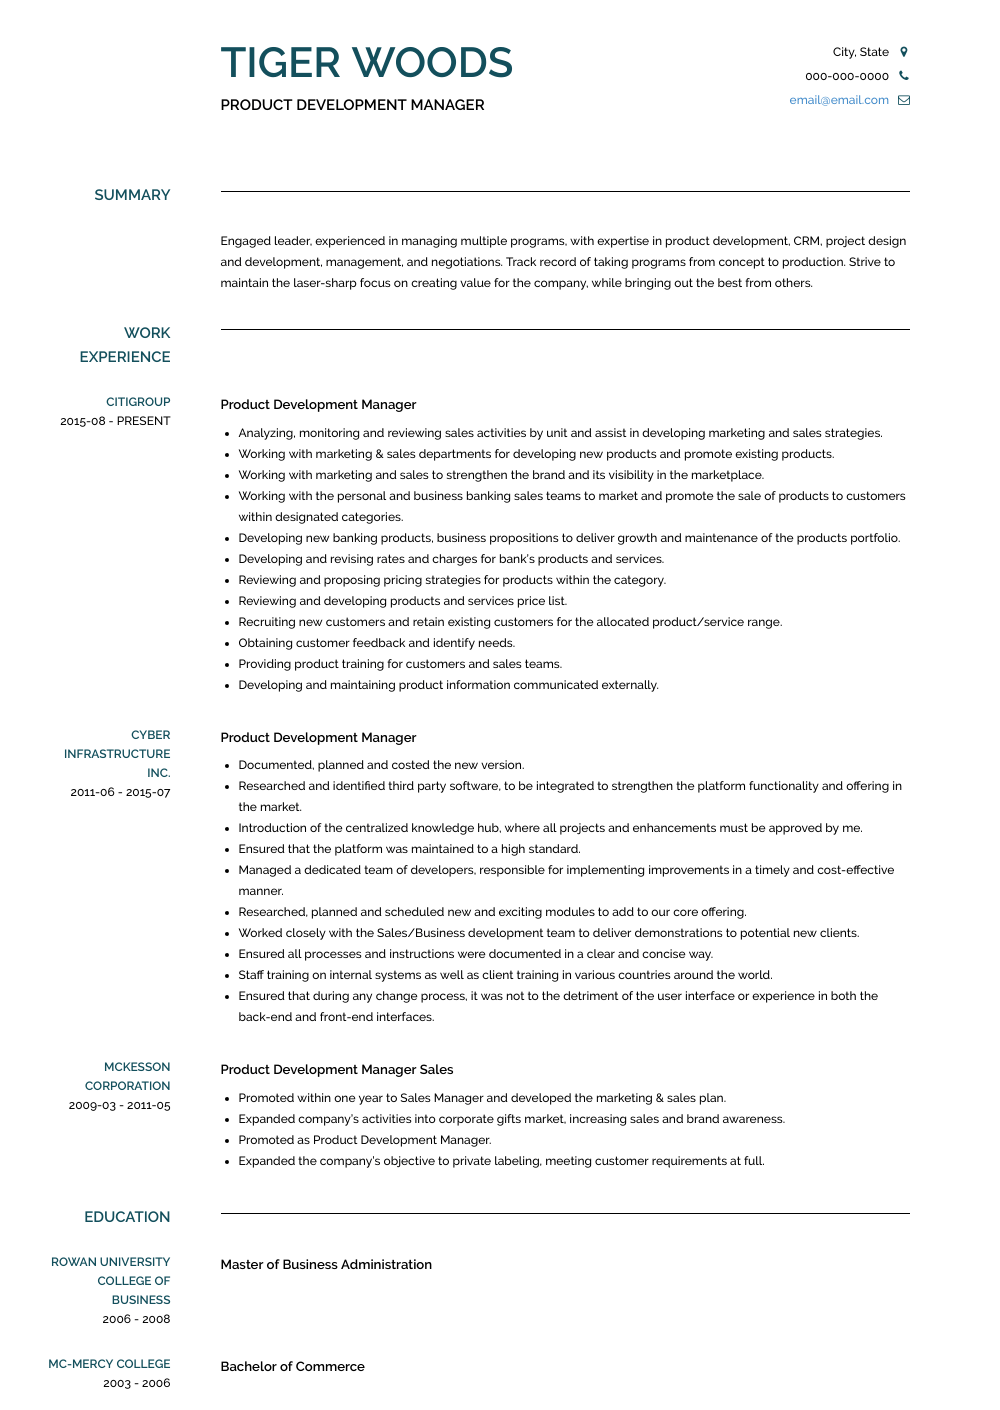 Development Manager Resume Samples And Templates Visualcv